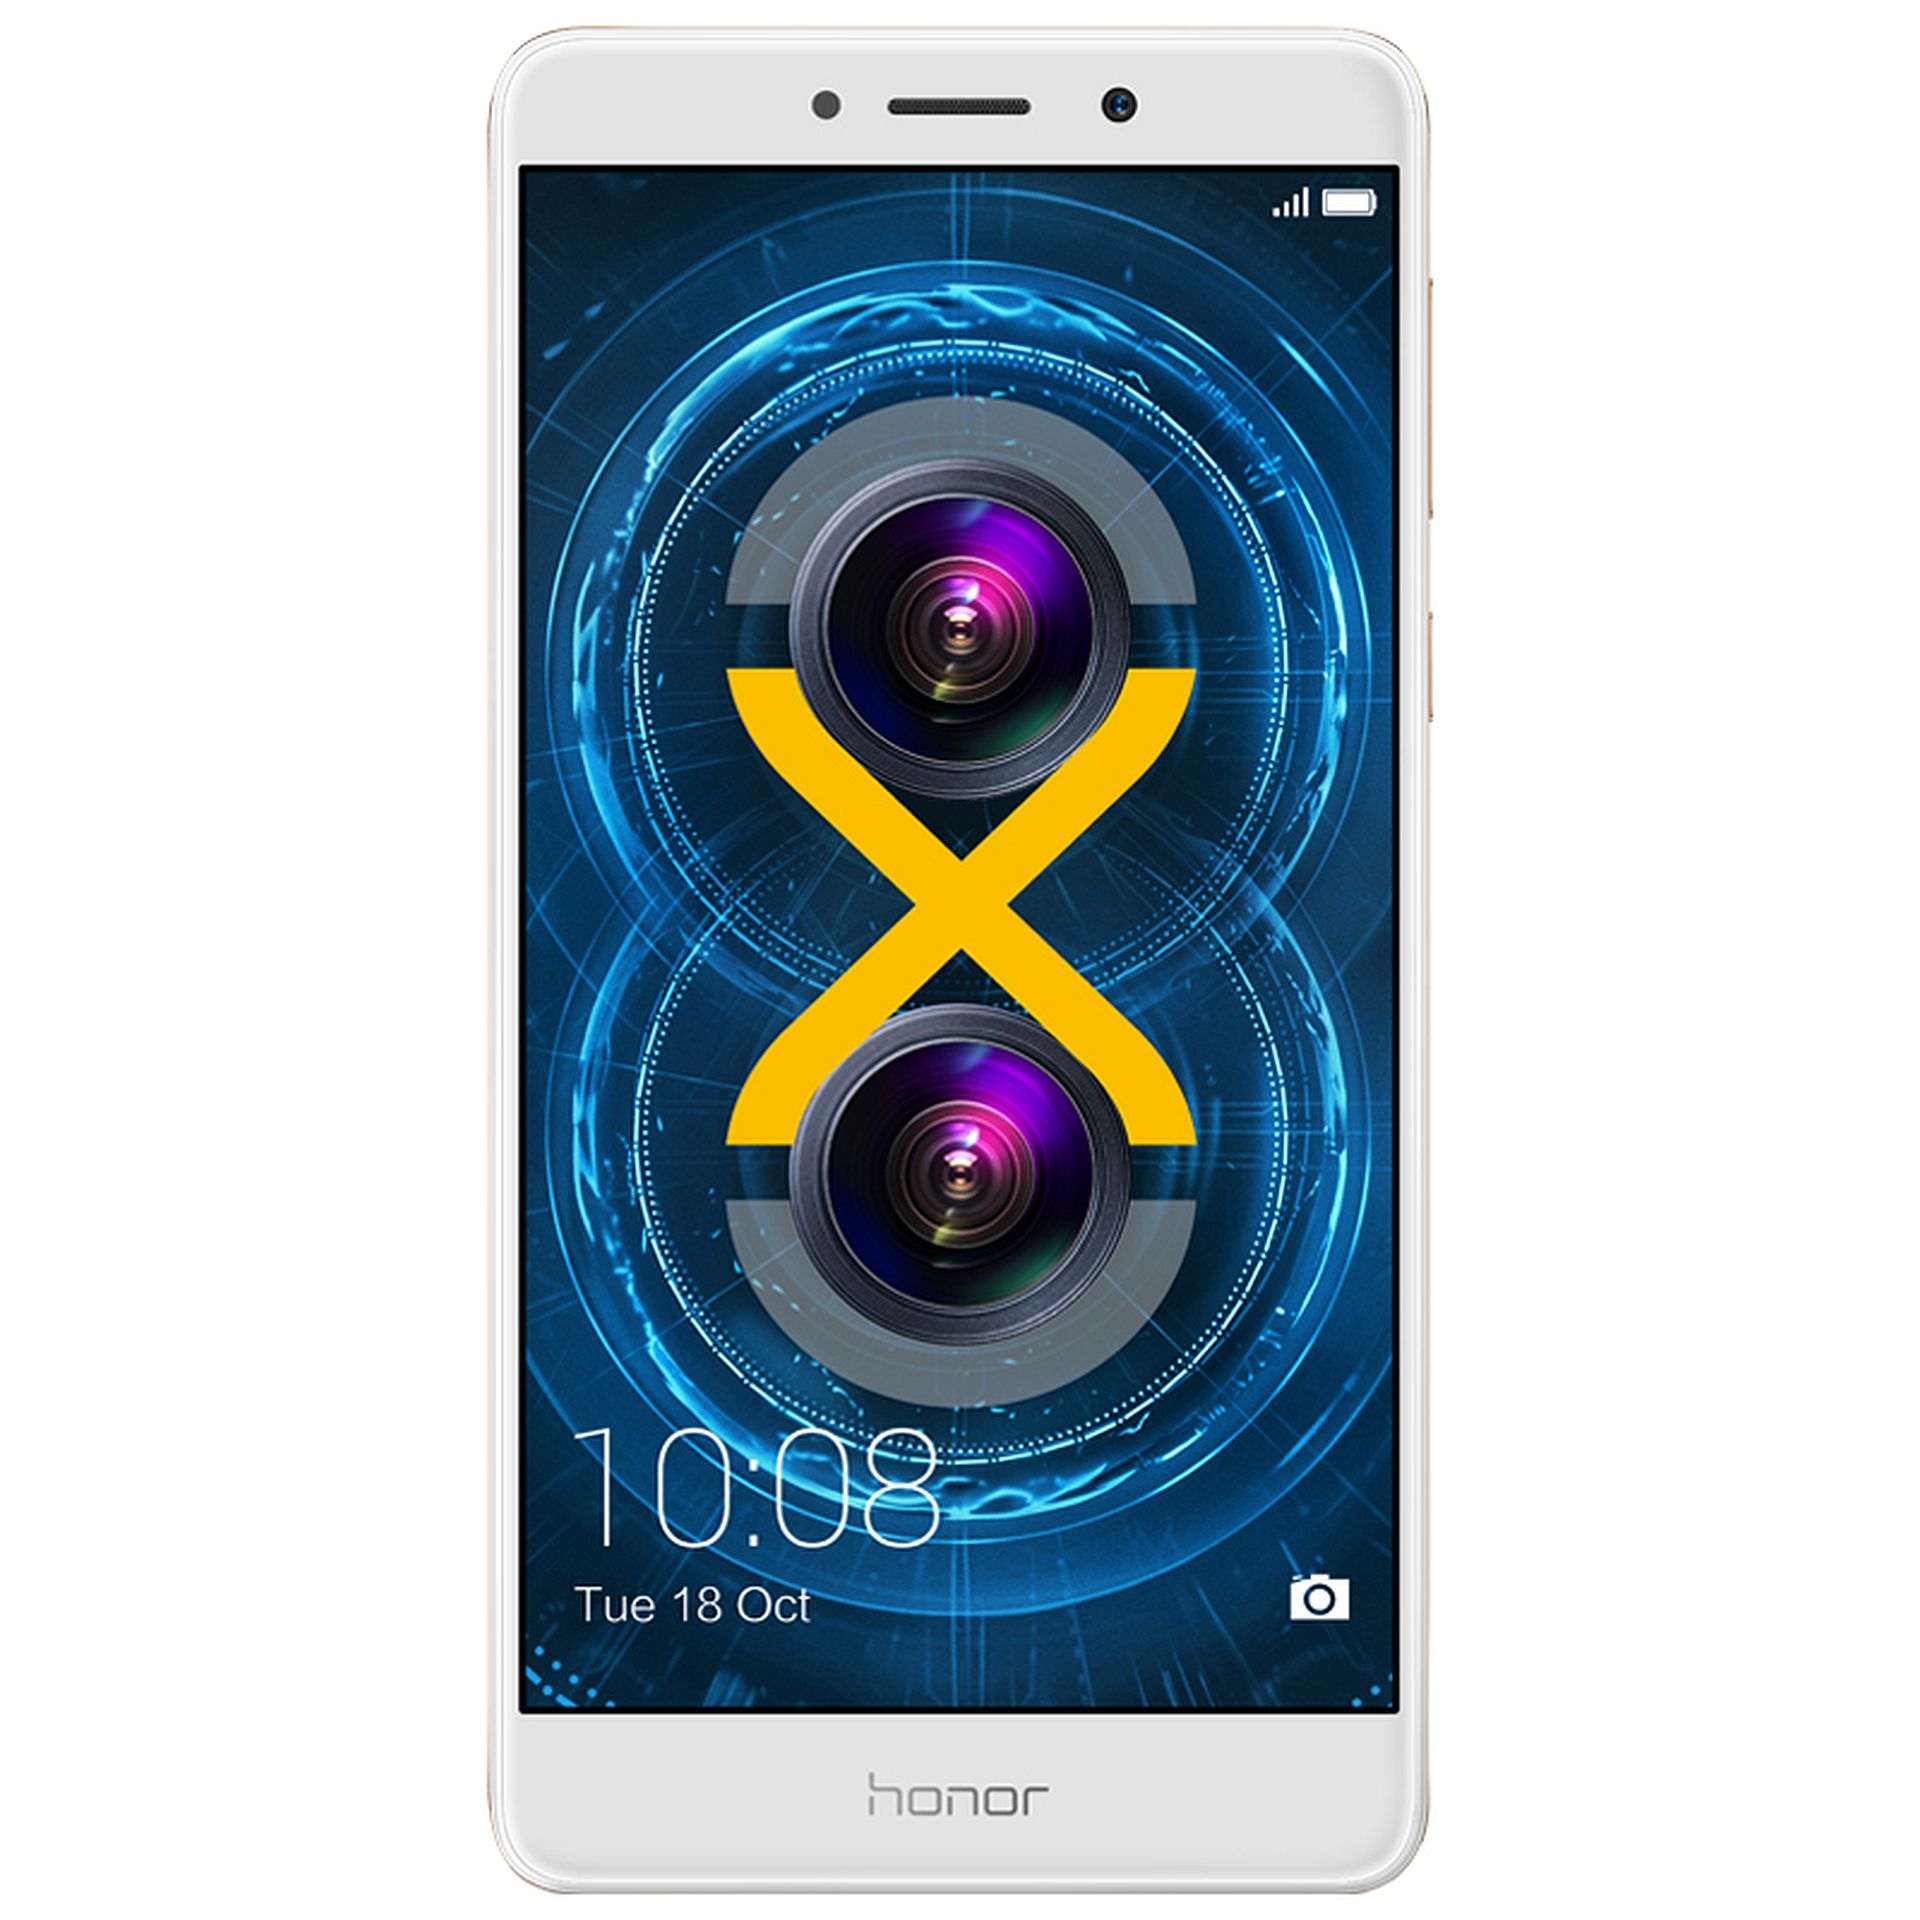 http://www.telefonguru.hu/images/content/Honor 6X Gold front_small.jpg